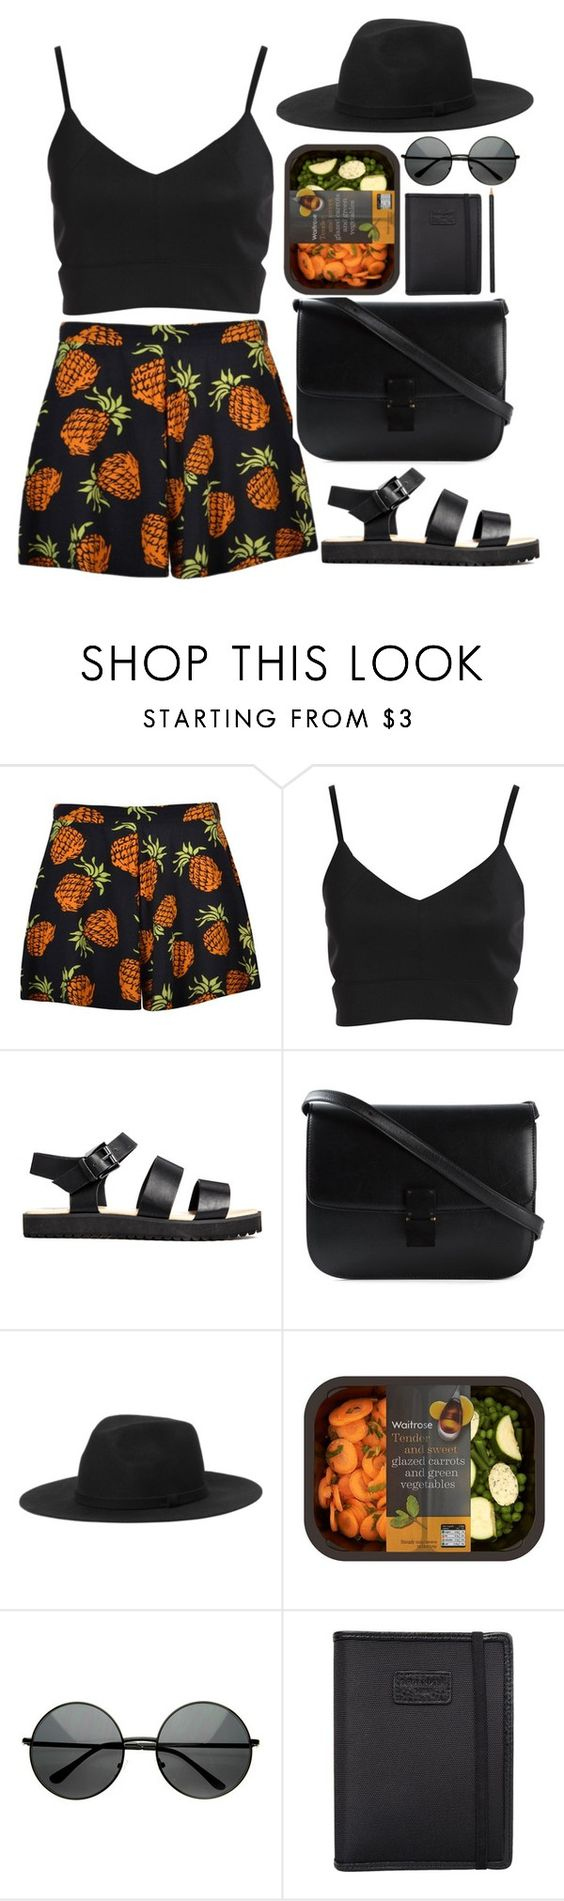 """casual"" by yanilobox ❤ liked on Polyvore featuring CÉLINE, Monki, ZeroUV, Nava and Hermès"